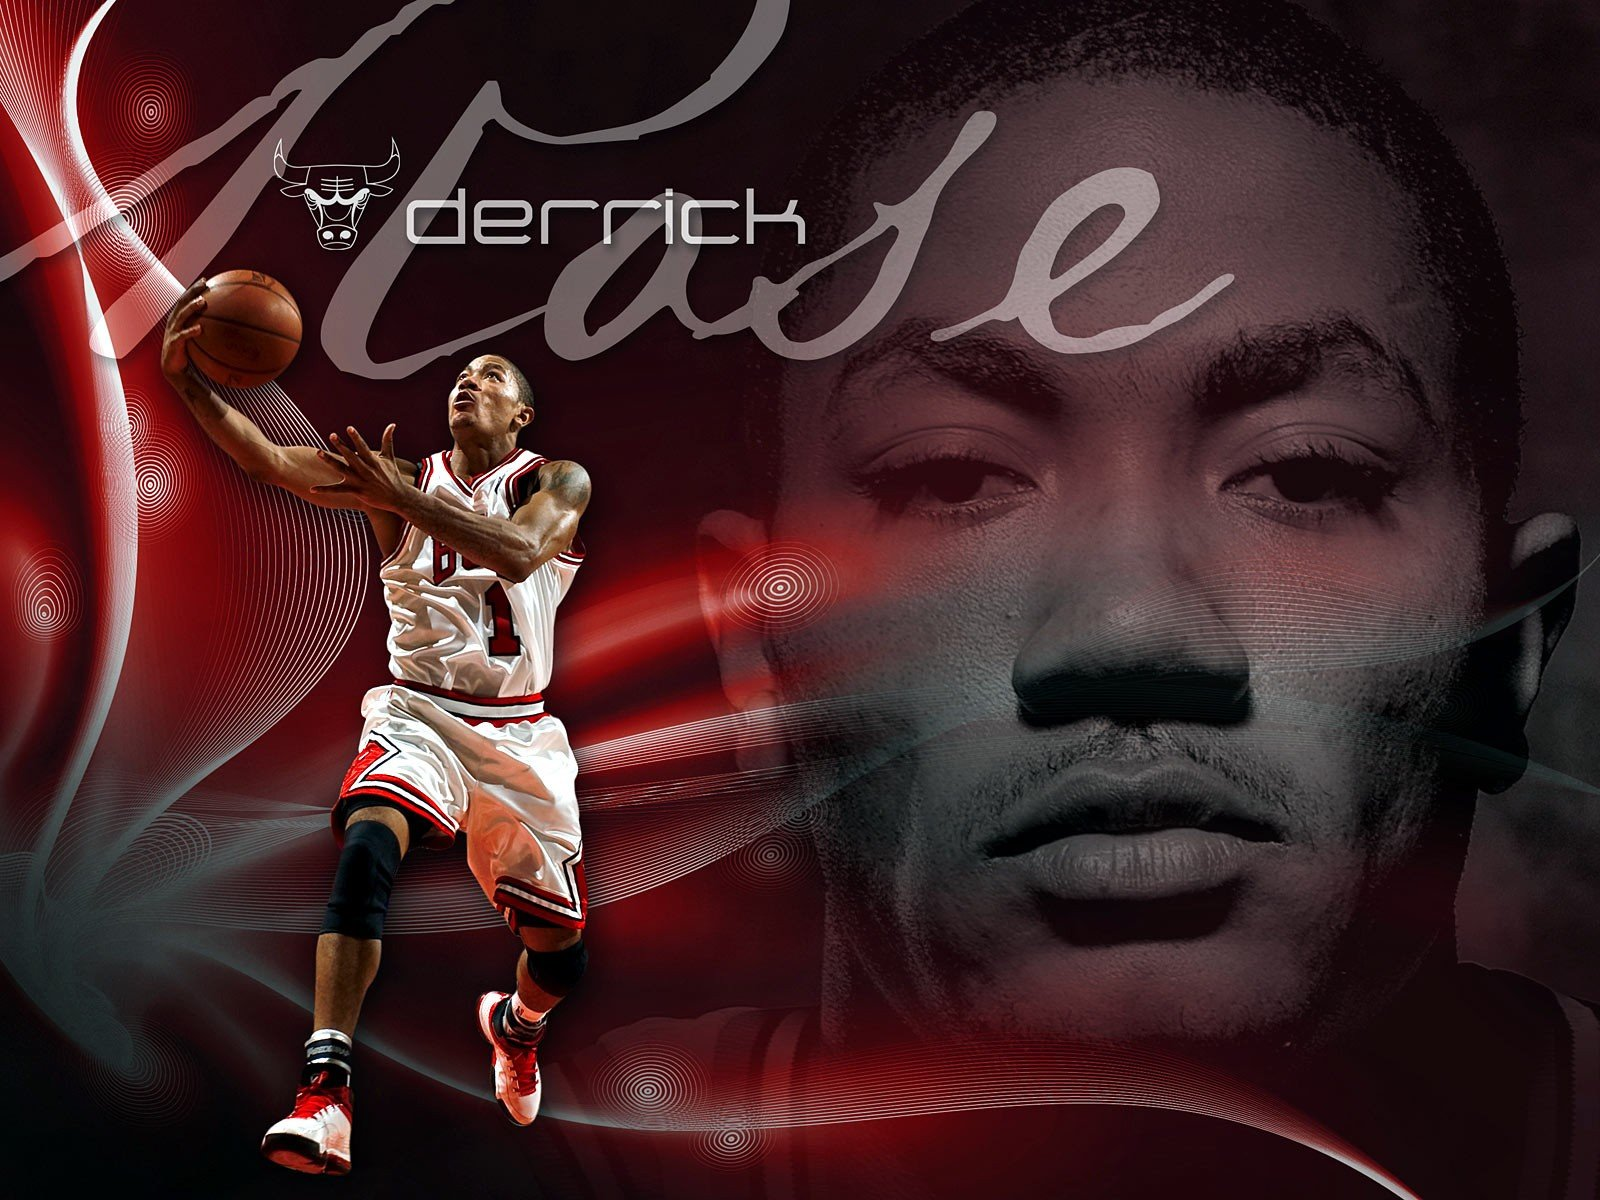 Derrick Rose HD Wallpapers Latest HD Wallpapers 1600x1200